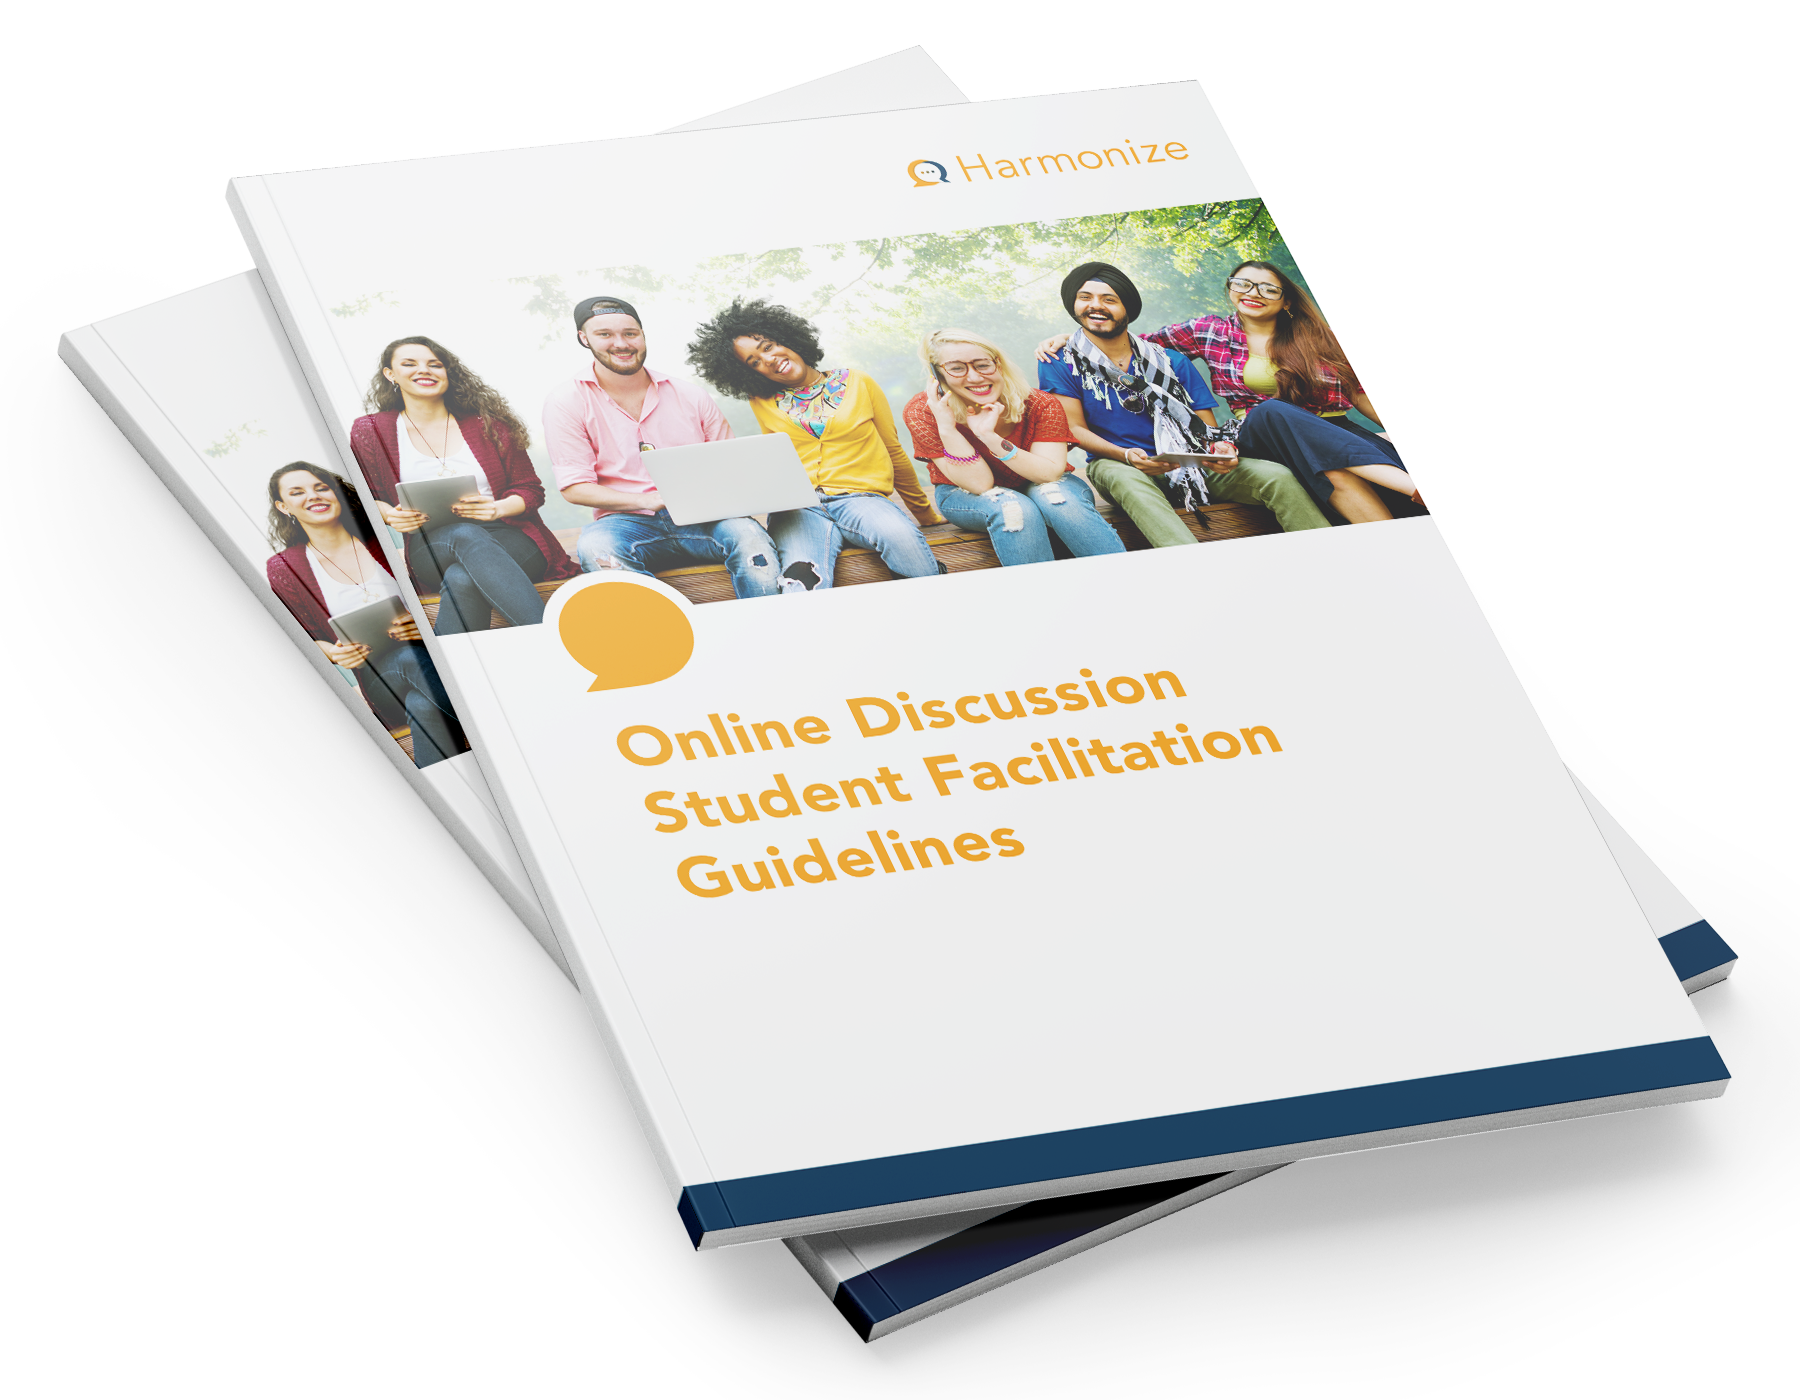 Online Discussion Student Facilitation Guidelines